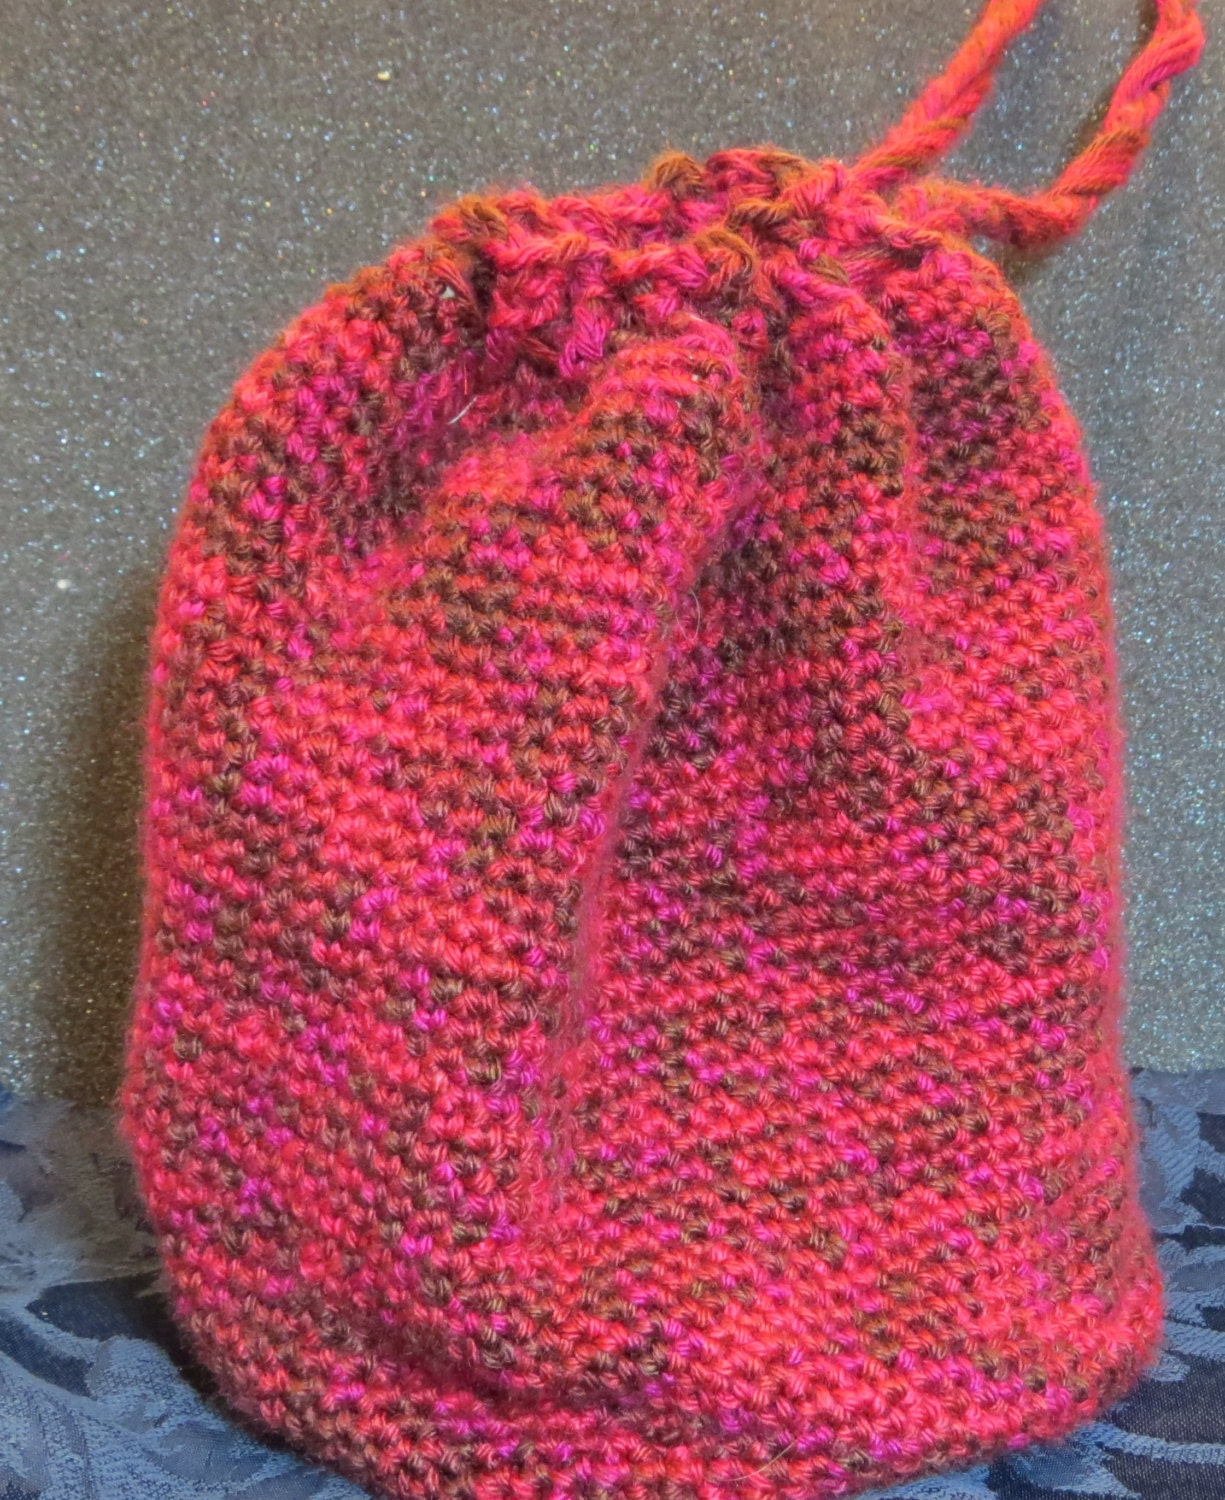 Lining Crochet Bag : Hand crochet drawstring bag. Fully lined. by GenuineParadox